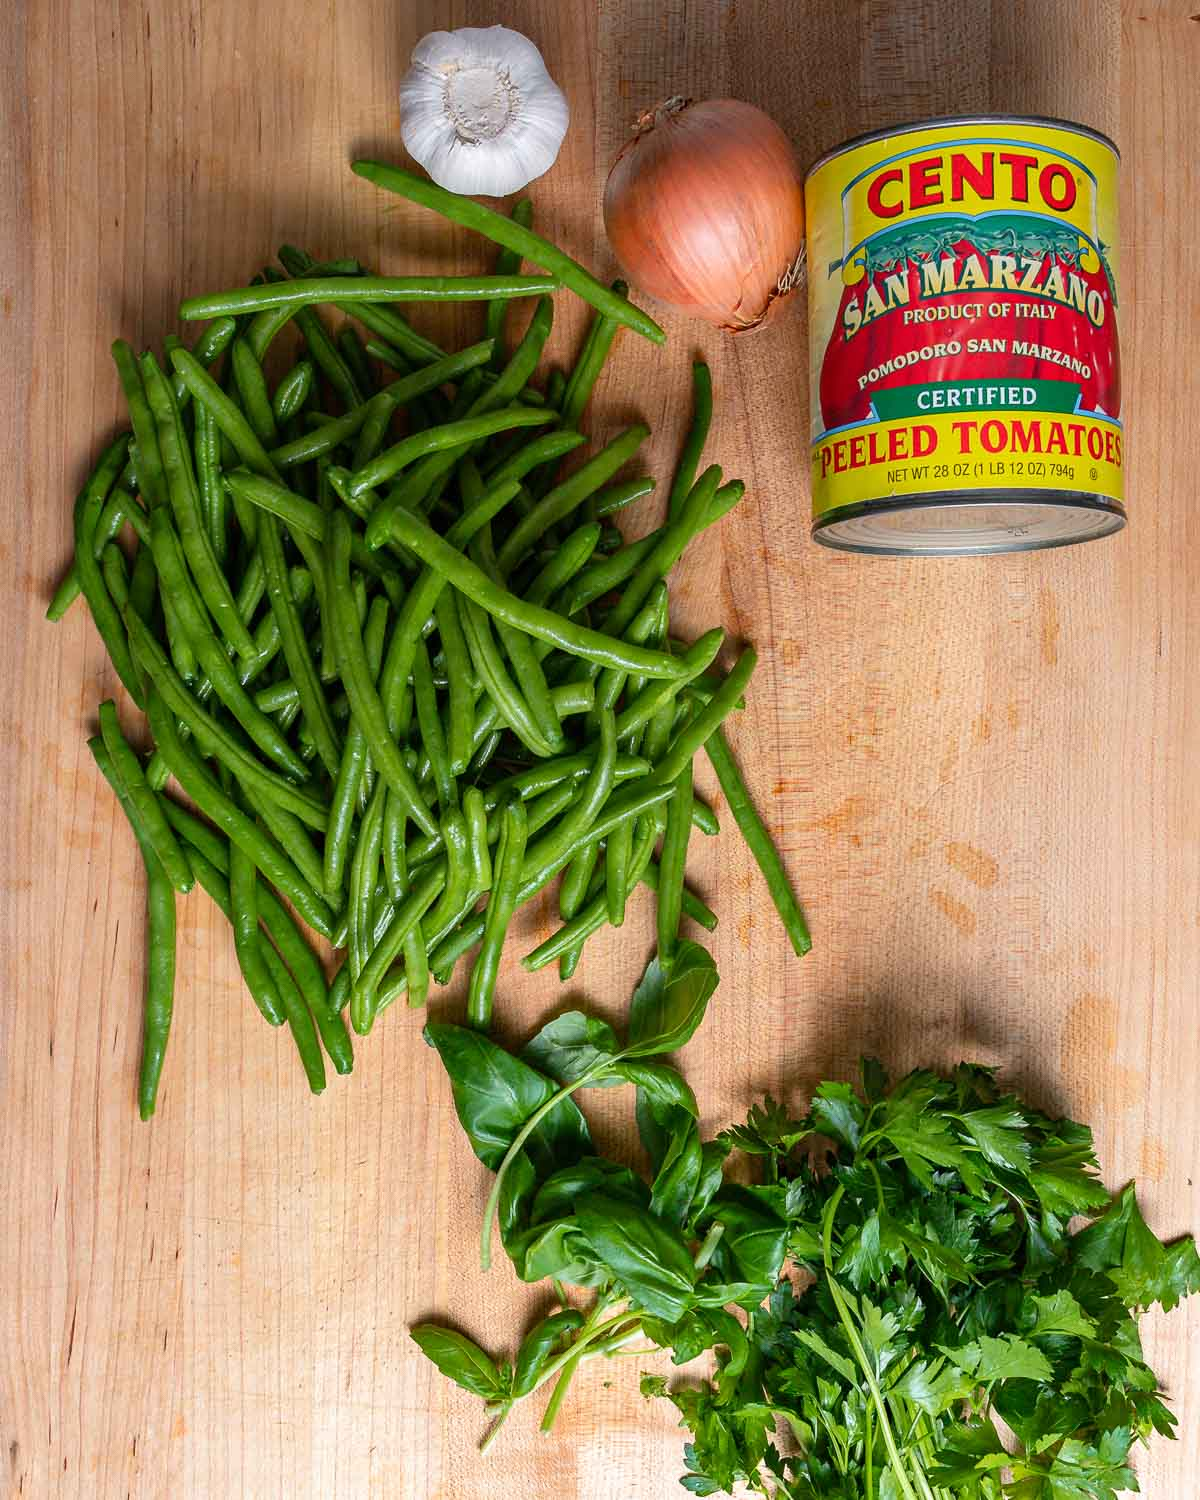 Ingredients shown: green beans, garlic, onion, can of plum tomatoes, basil, and parsley.